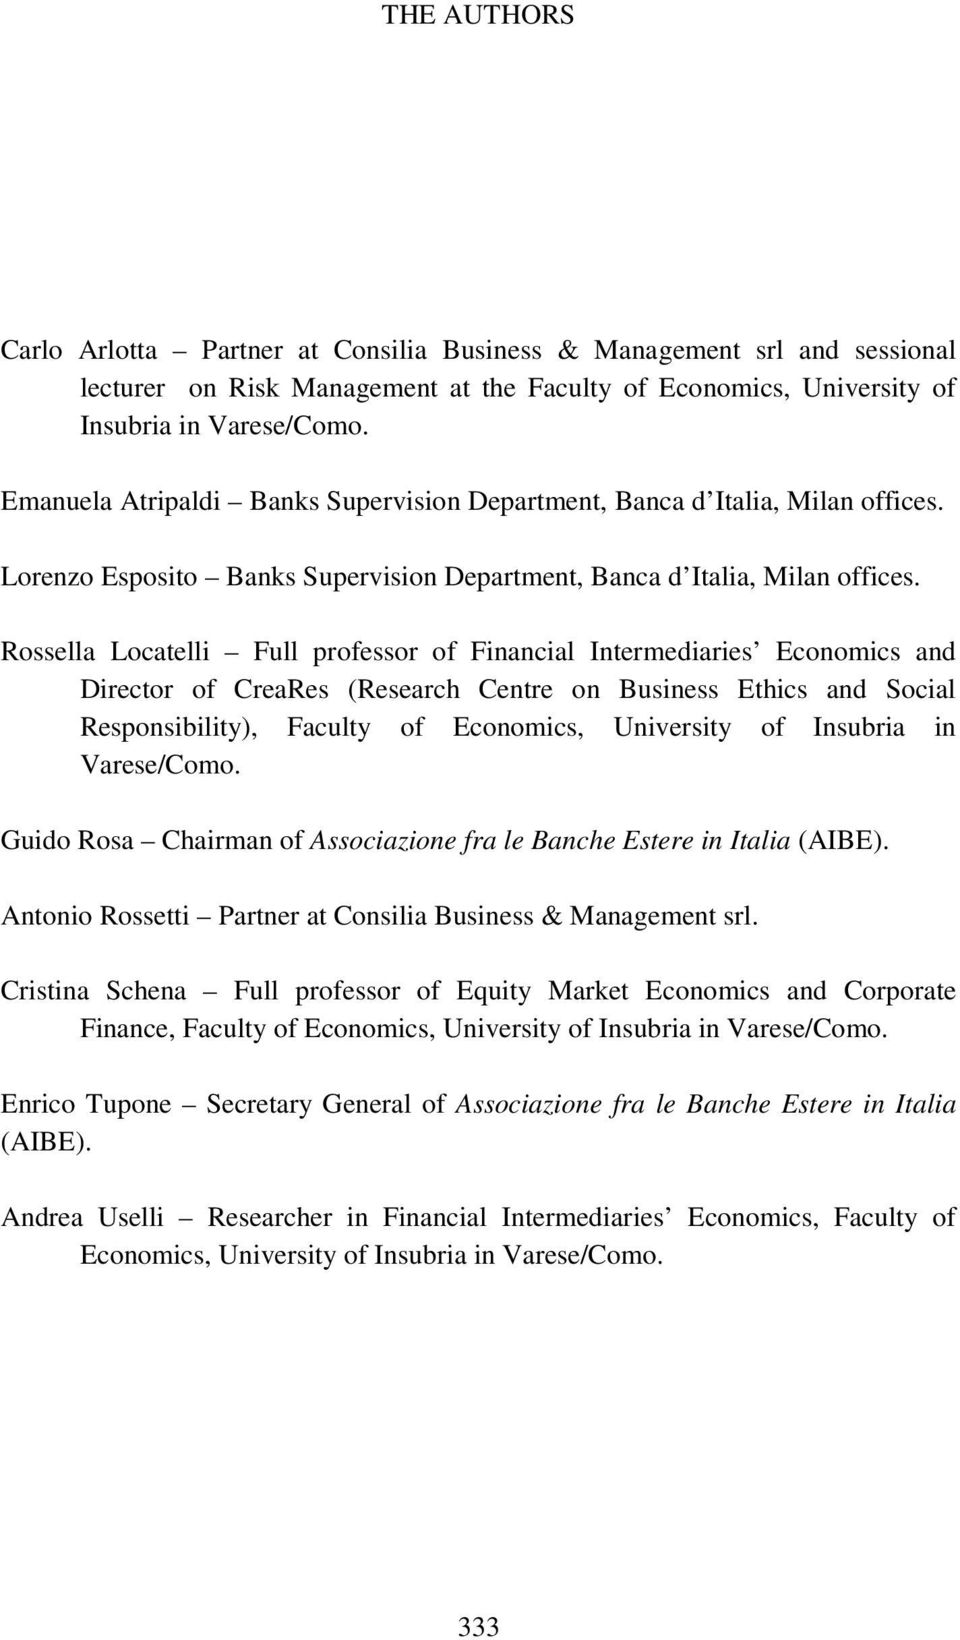 Rossella Locatelli Full professor of Financial Intermediaries Economics and Director of CreaRes (Research Centre on Business Ethics and Social Responsibility), Faculty of Economics, University of